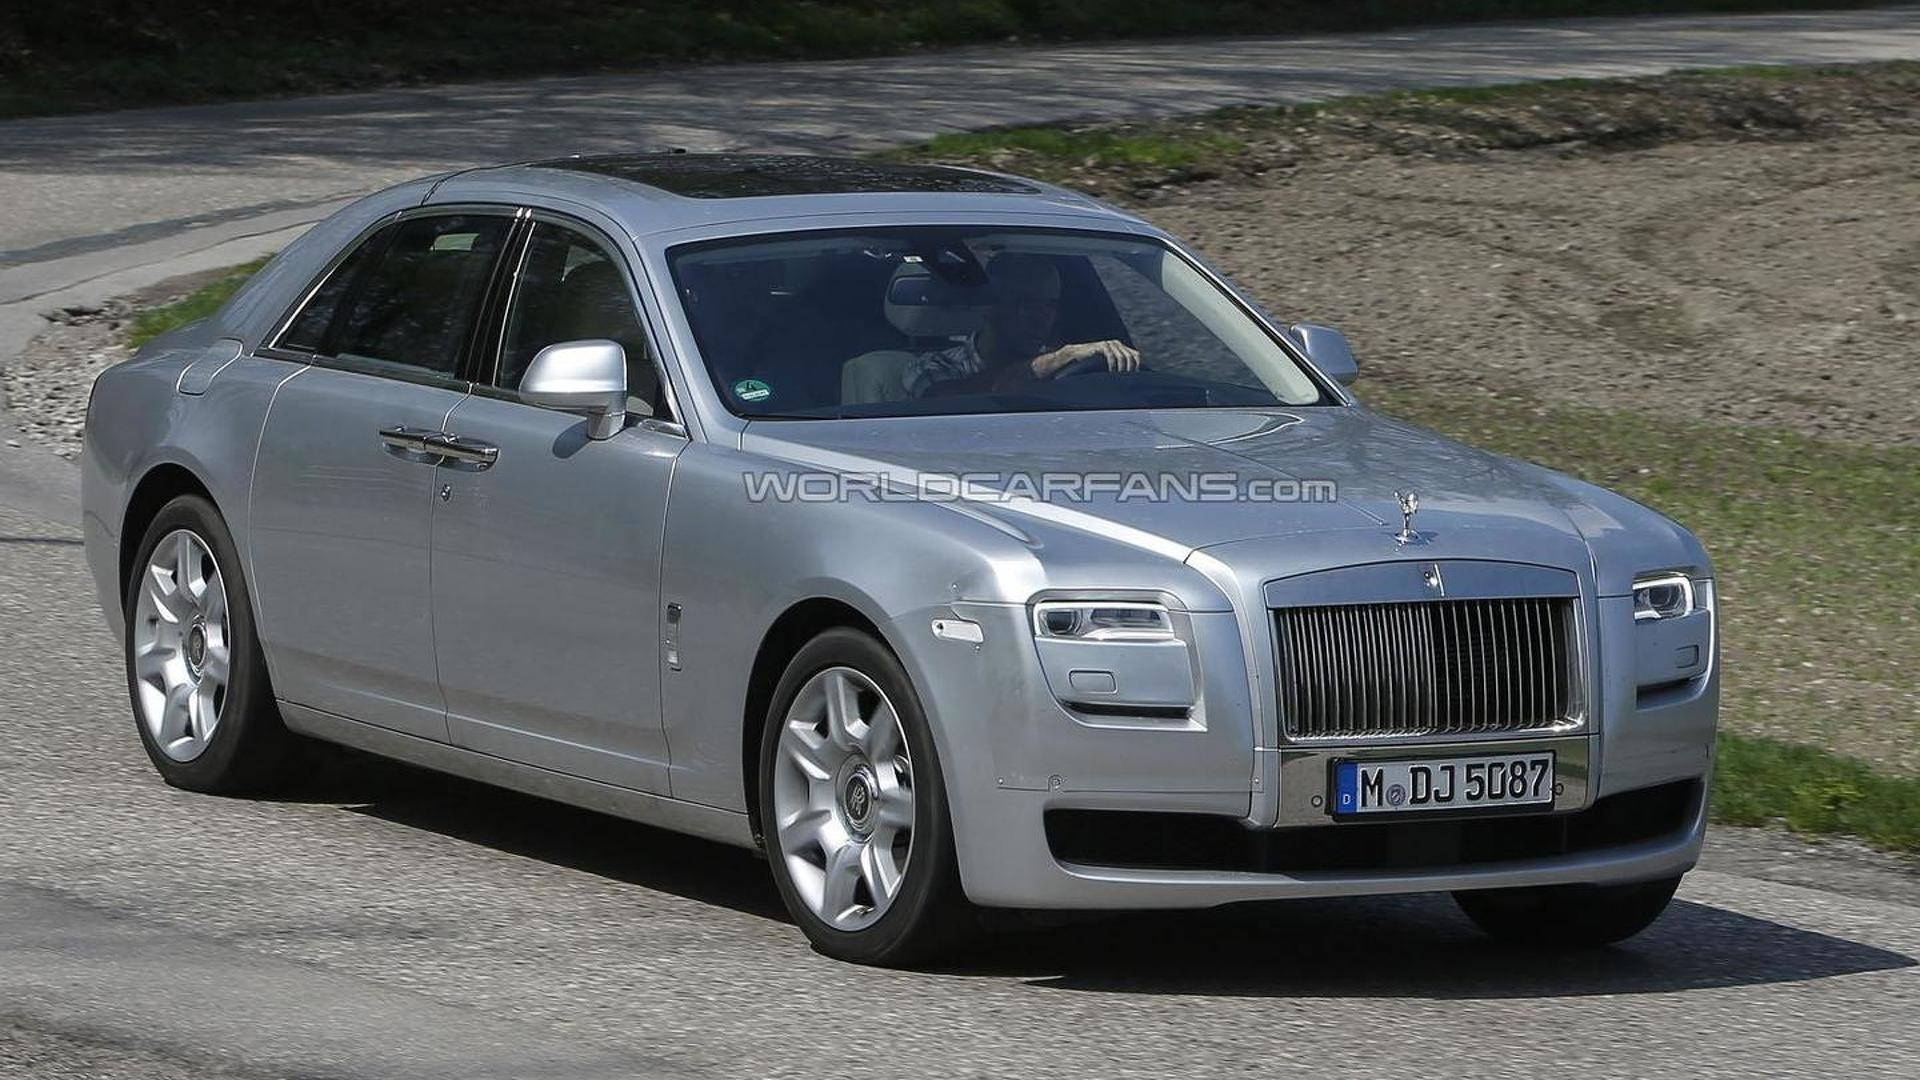 Rolls Royce Ghost Facelift Spied For The First Time